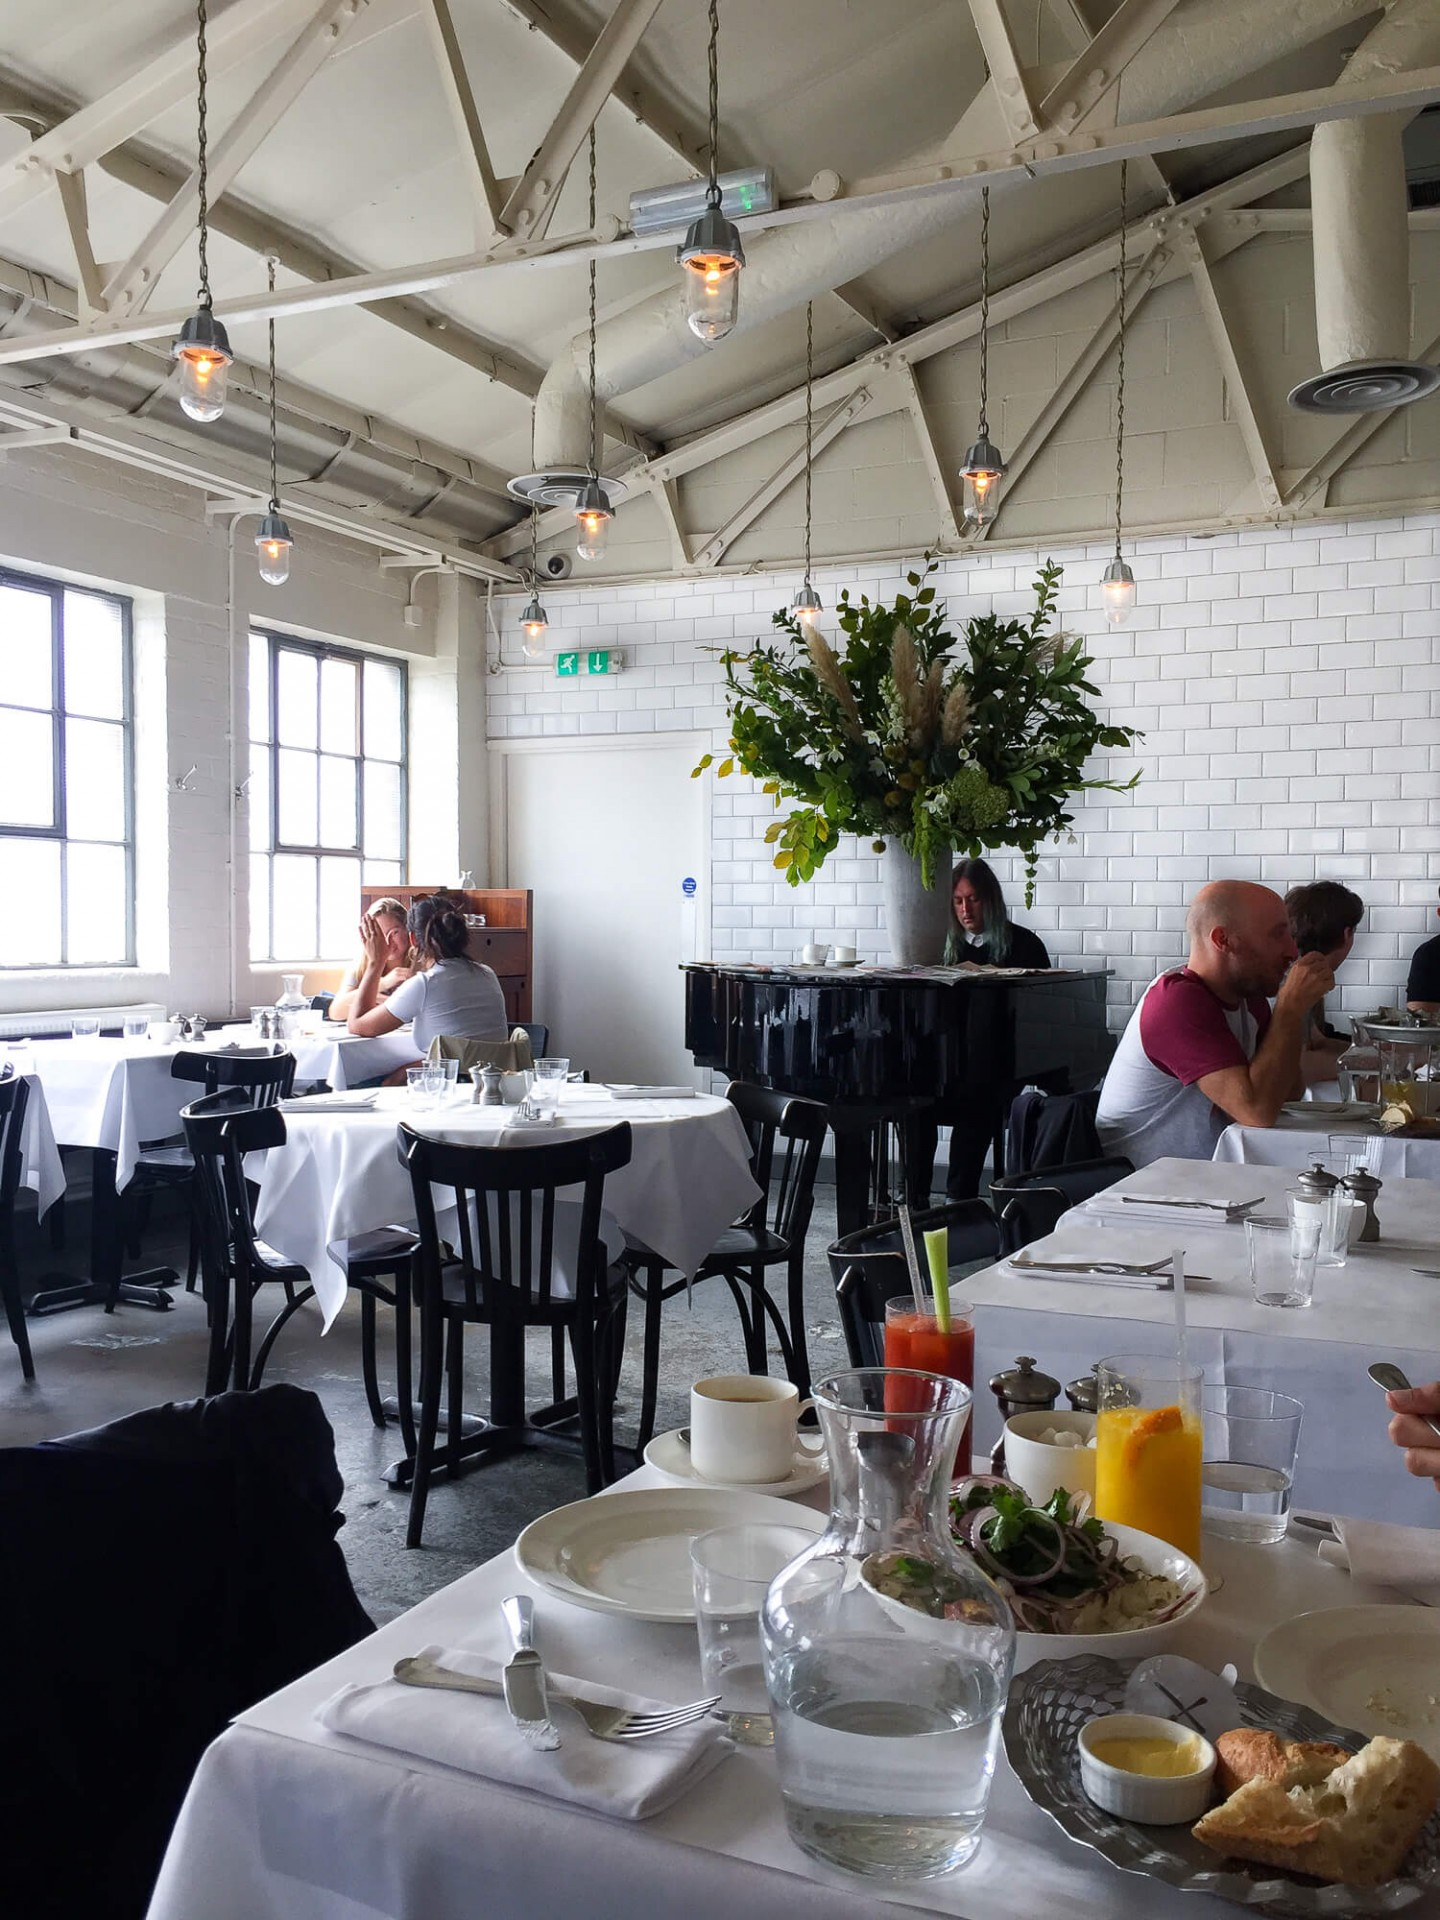 On the weekend brunch service at Bistrotheque in London they have a pianist play. Its such a beautiful spot for brunch!